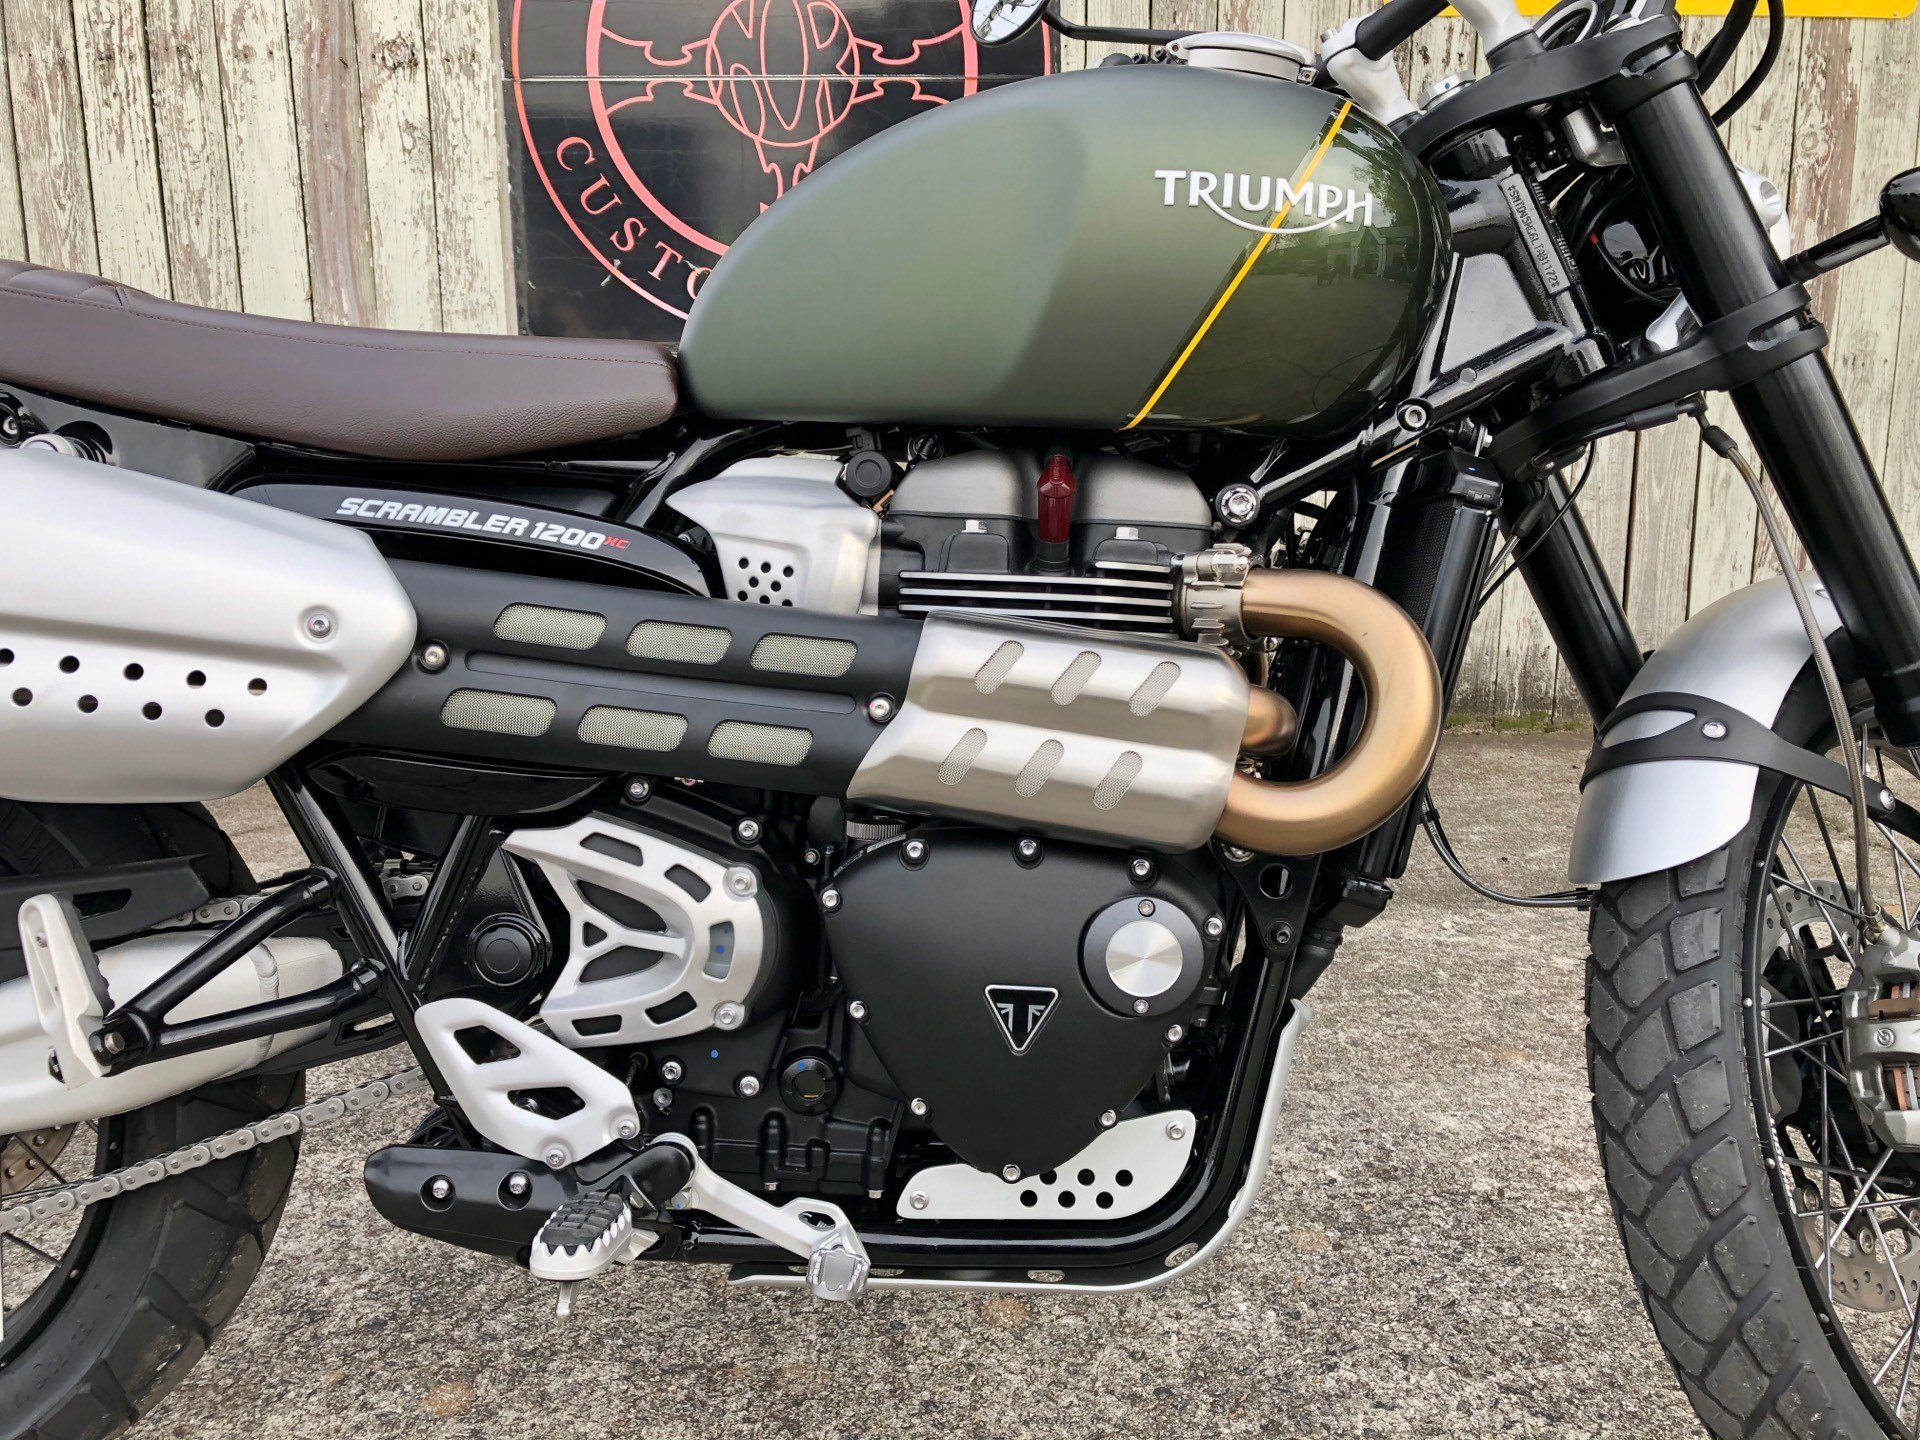 2020 Triumph Scrambler 1200 XC in Charleston, South Carolina - Photo 2